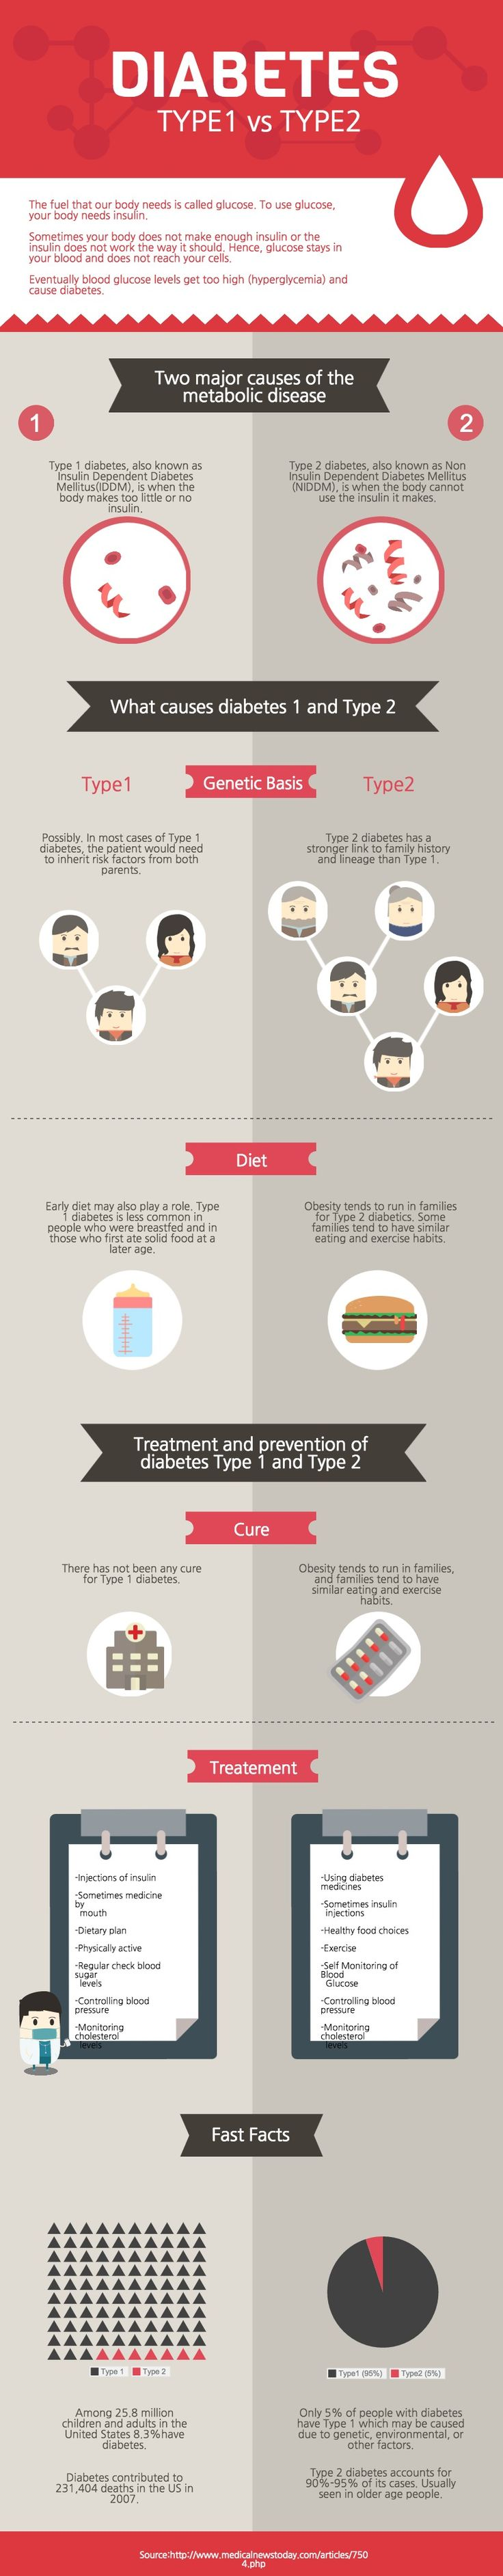 What do you know about Type 1 vs Type 2 Diabetes? This PRO infographic template is perfect for comparing 2 different topics in a visually engaging way. | Create your #infographic at piktochart.com